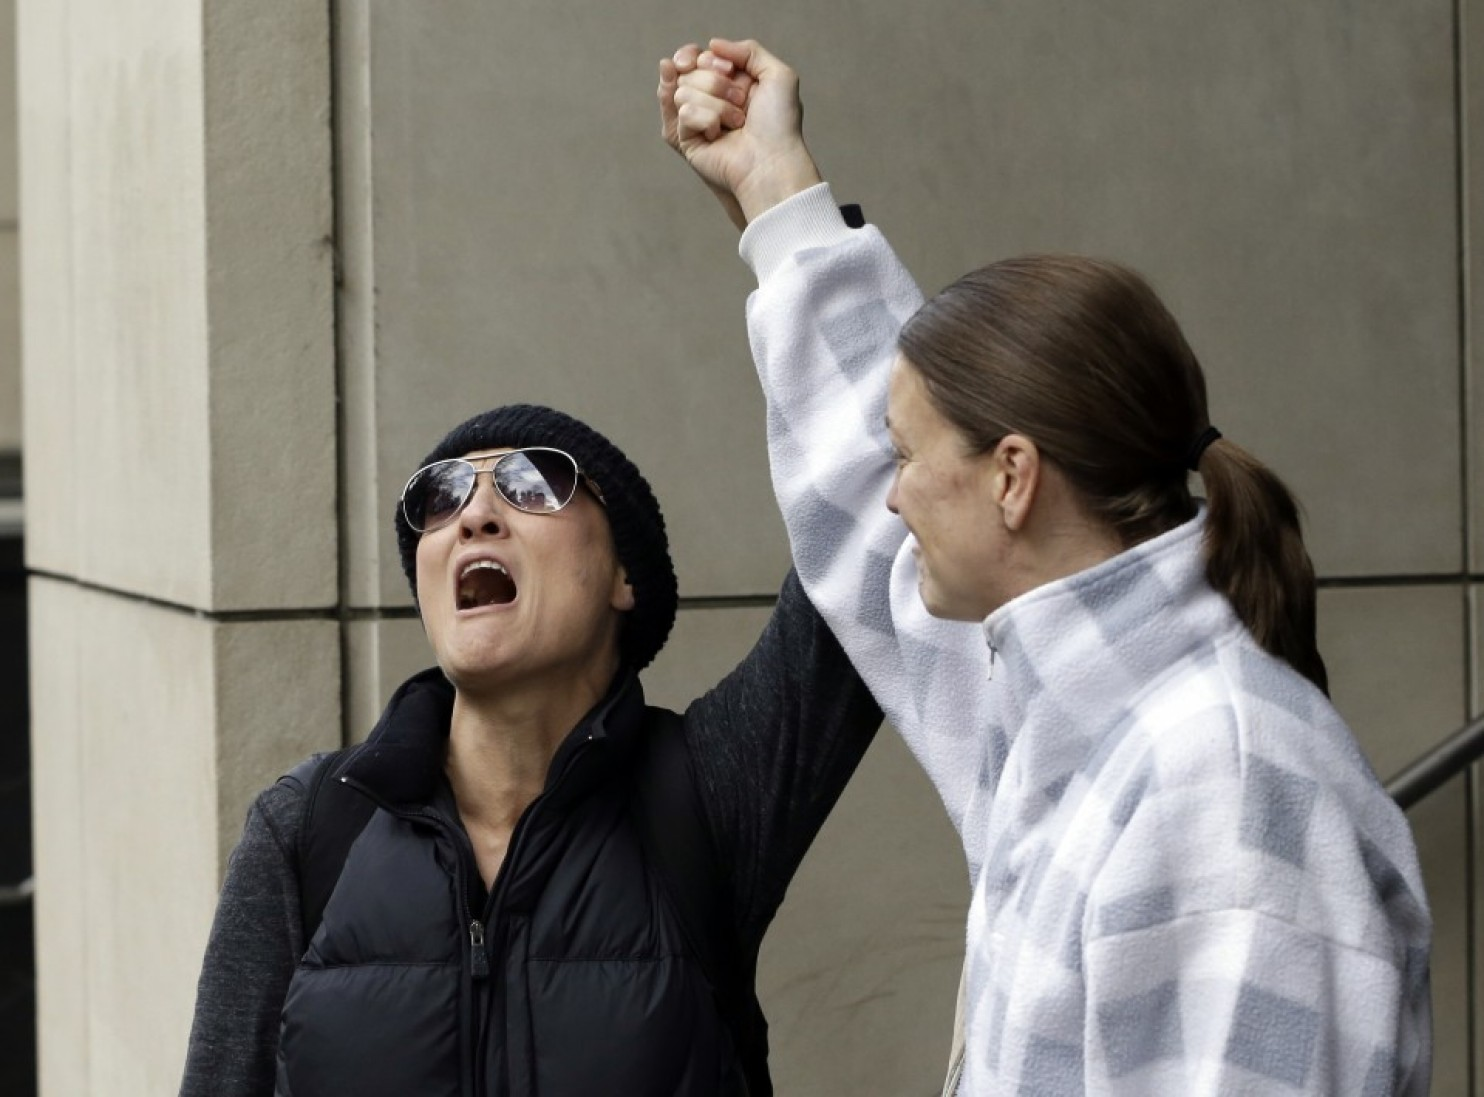 Supporters celebrate after hearing a verdict outside federal court. A jury exonerated brothers Ammon and Ryan Bundy and five others of conspiring to impede federal workers from their jobs at the Malheur National Wildlife Refuge. Portland, Oregon, Oct. 27, 2016 | Photo by Don Ryan (AP), St. George News